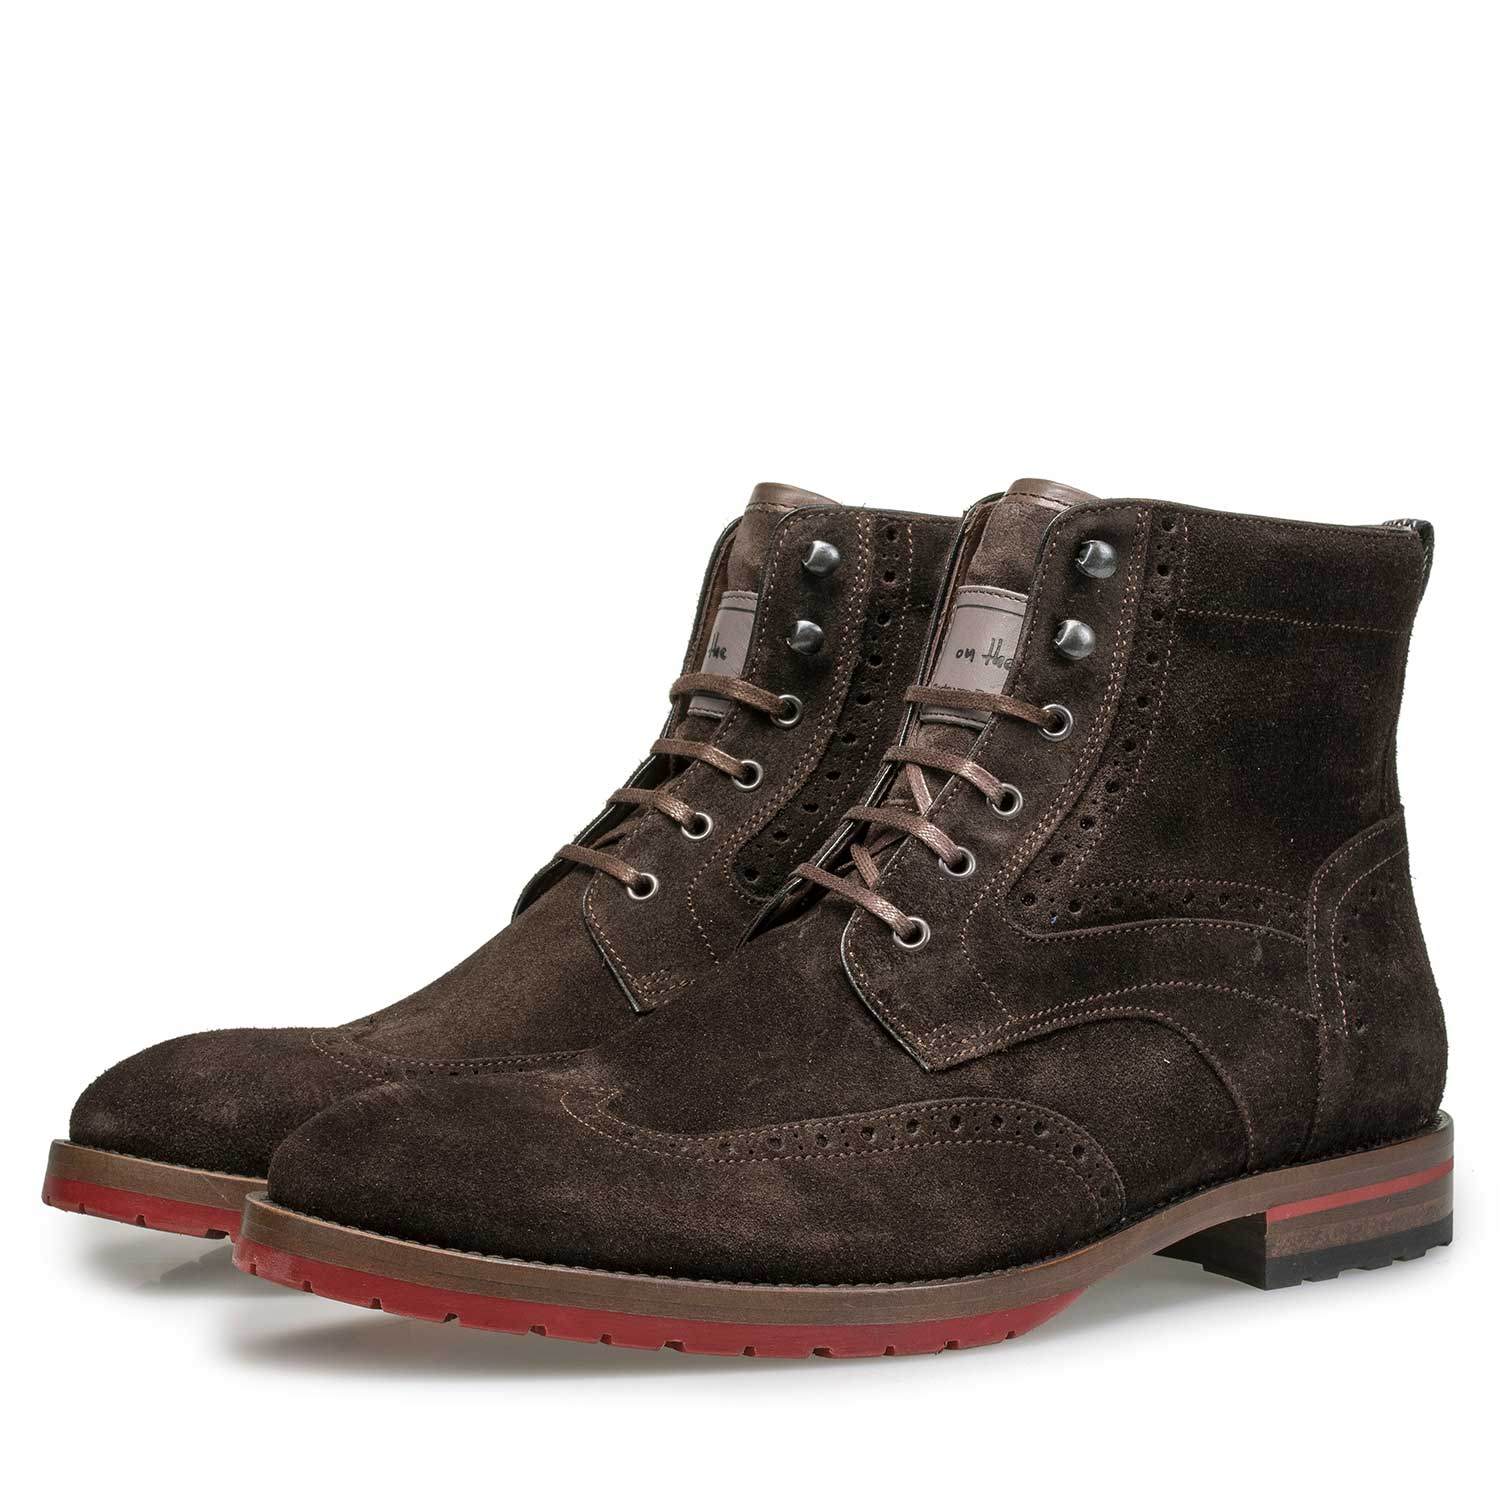 10295/06 - Brown suede leather brogue lace boot